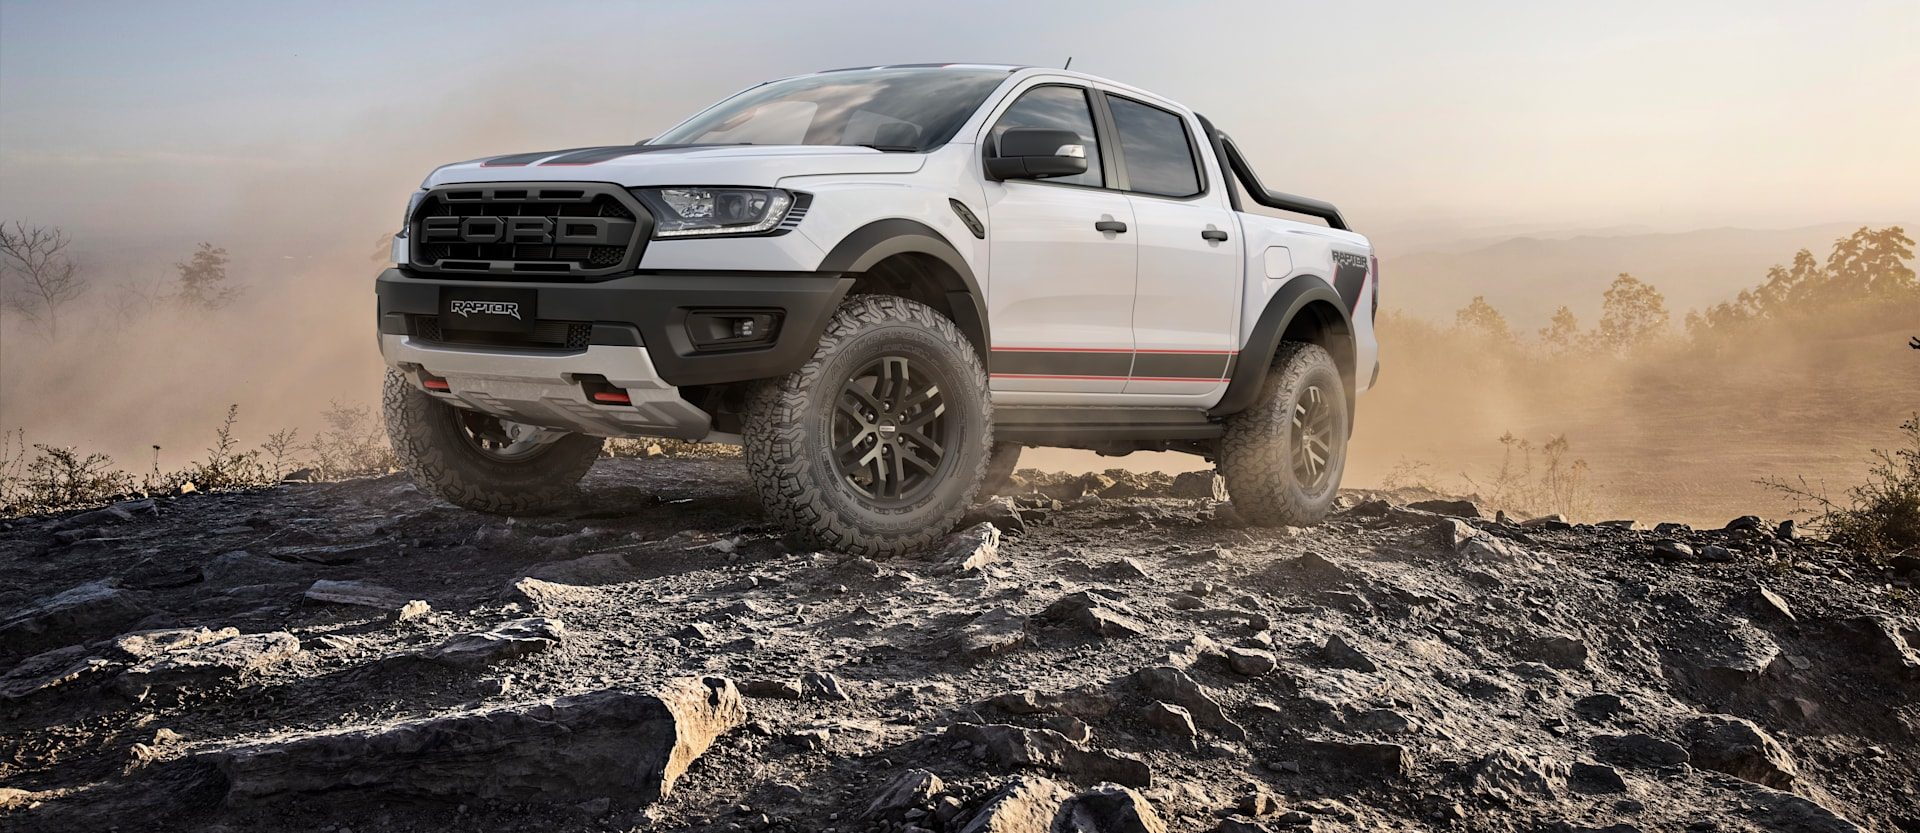 Ford has unveiled the Raptor X variant of its Ranger pickup in Australia, which is all show and the same go as before.